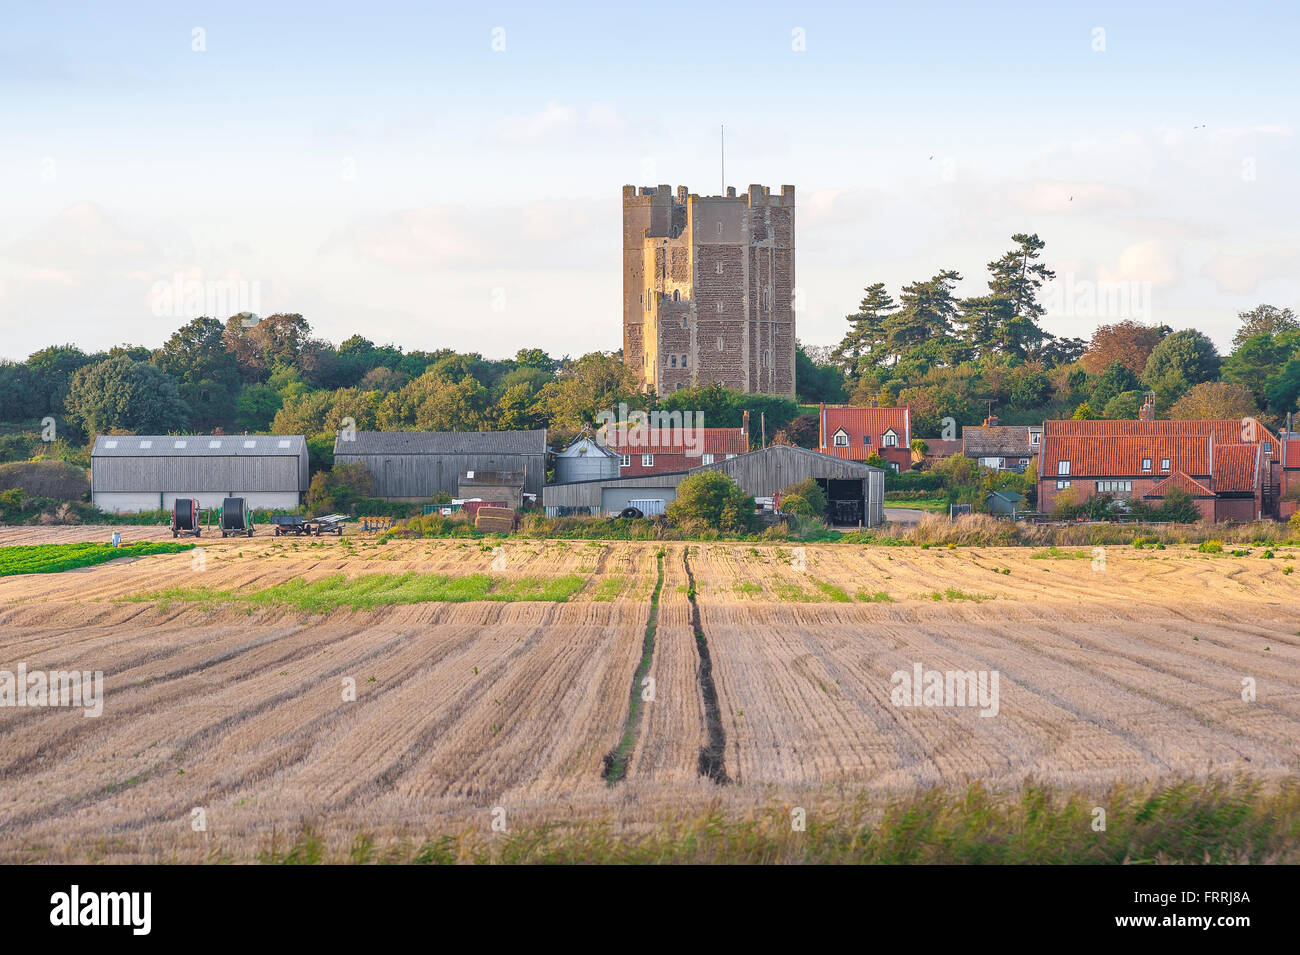 Orford castle Suffolk, the castle was built by Henry II in the Suffolk town of Orford between 1165 and 1173  to - Stock Image